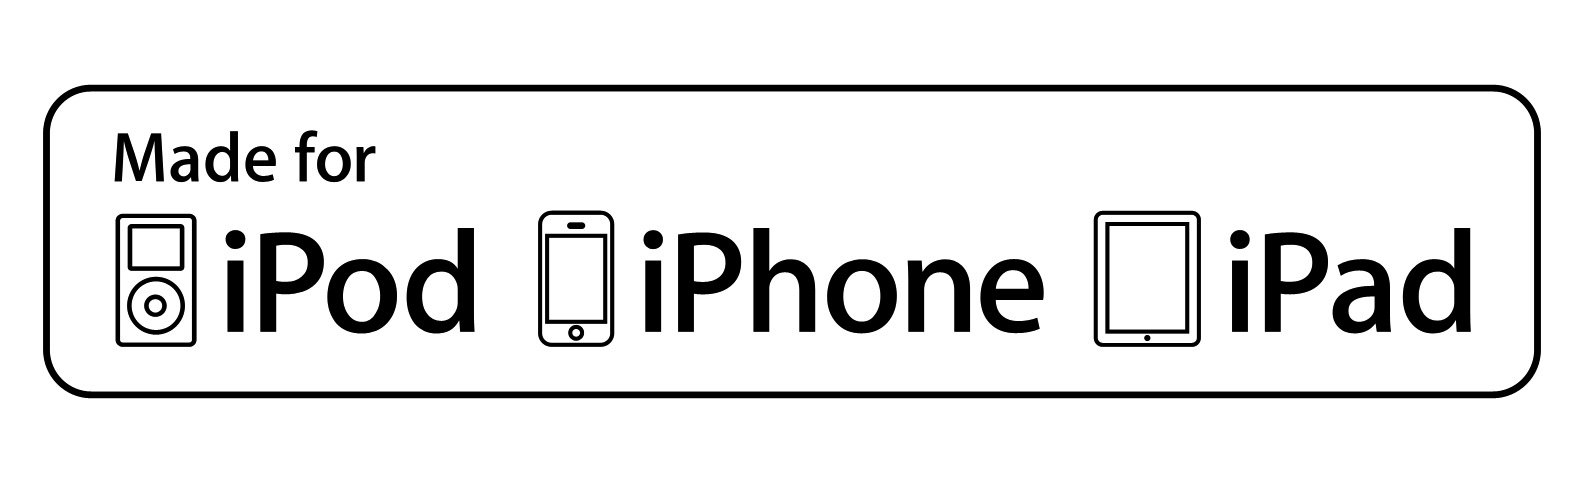 About iPhone, iPad, and iPod accessories - Apple Support